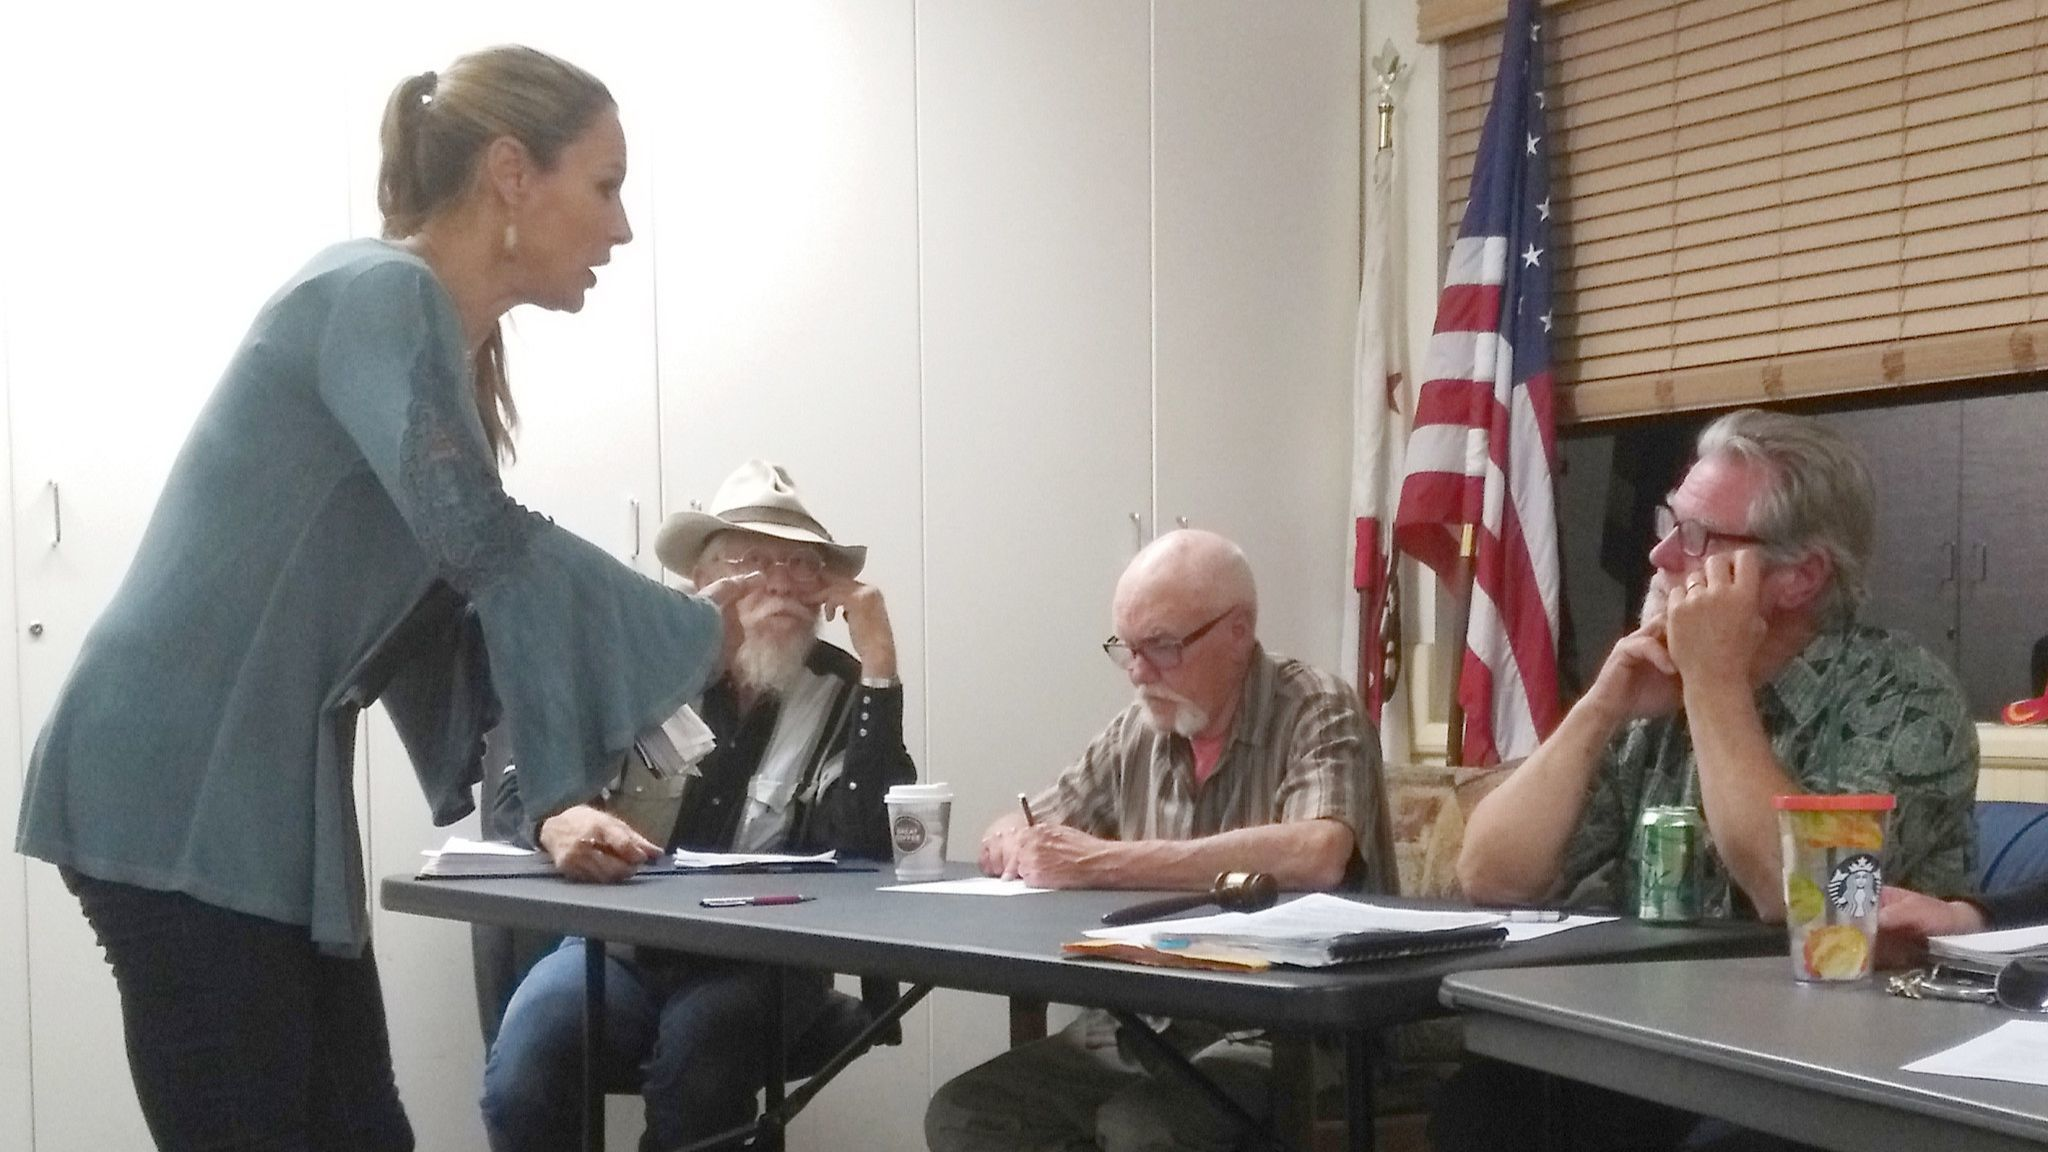 On April 26, Clarice Cioe presents plans to the Ramona Design Review Board for a new fence, landscaping and water tower at a building proposed as a medical marijuana business.